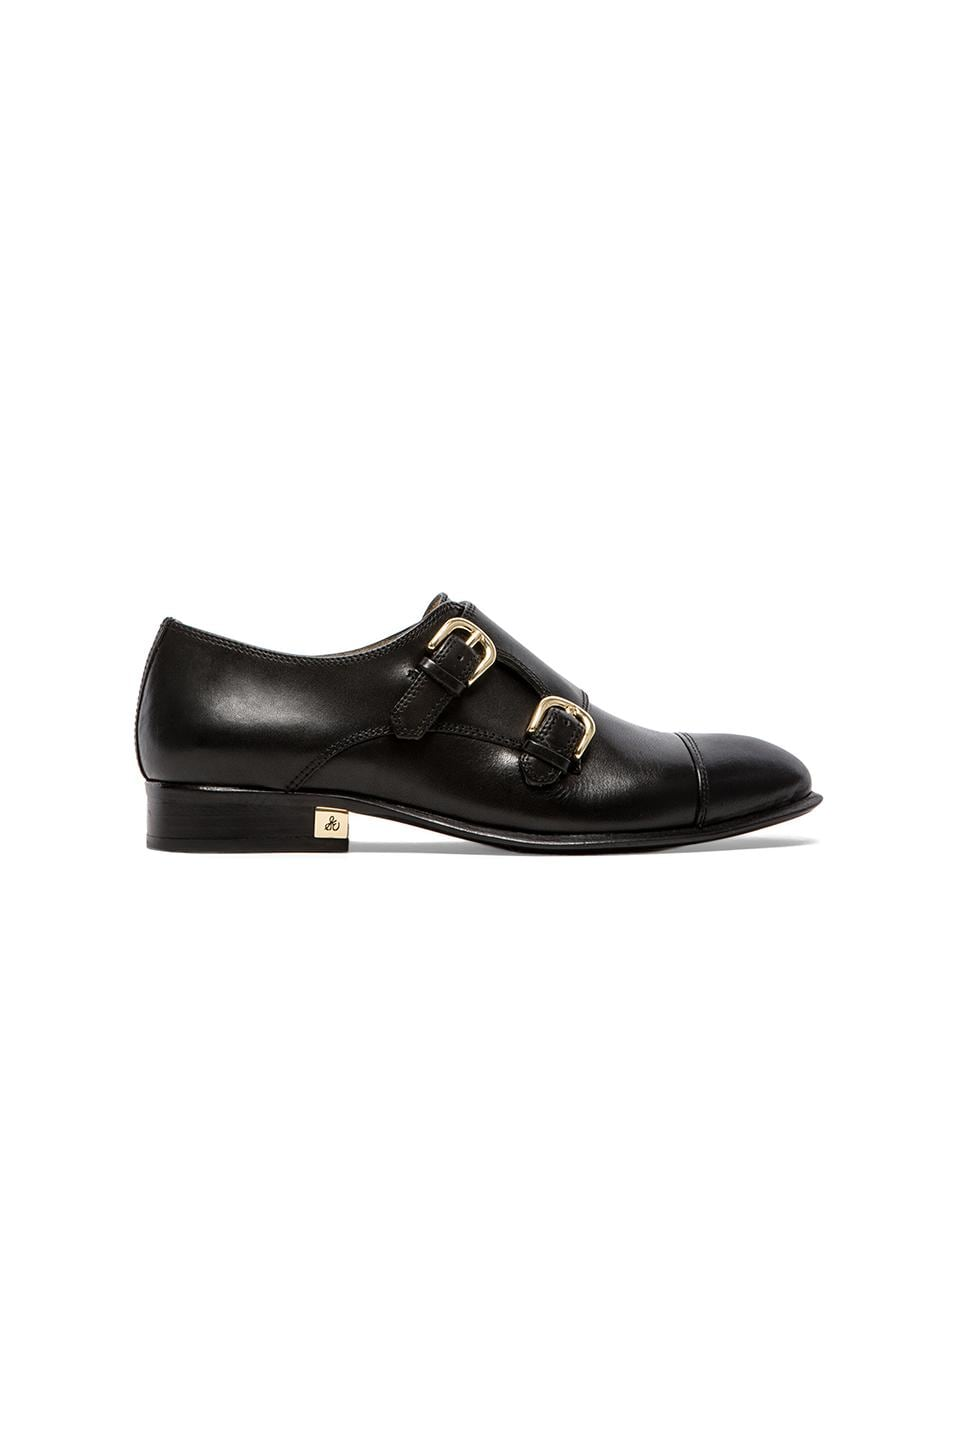 Sam Edelman Balflour Oxford in Black Leather